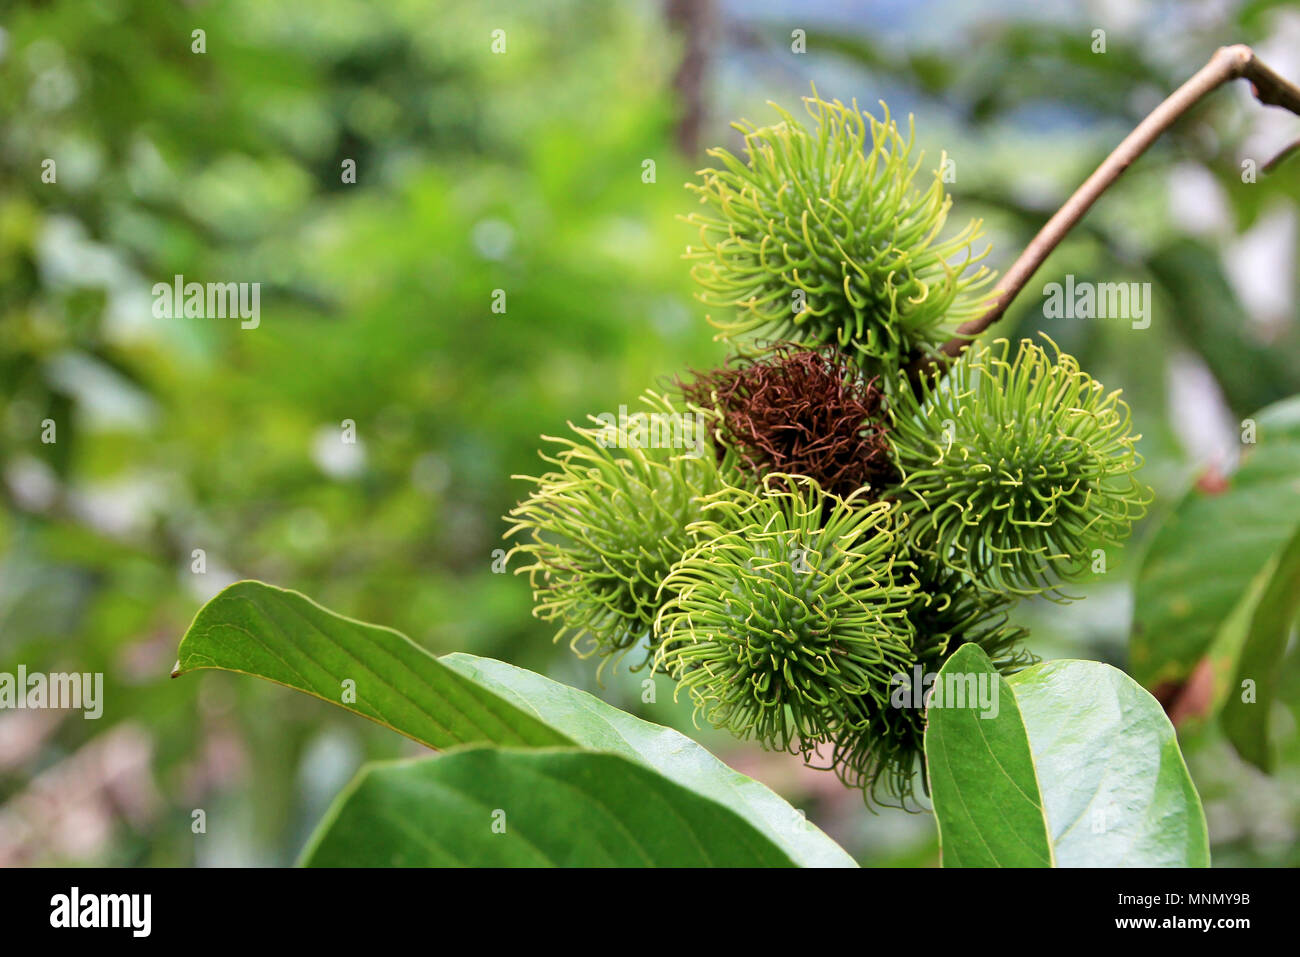 Rambutan, Nephelium Lappaceum, the lychee like fruit with long hooked spines, Costa Rica - Stock Image